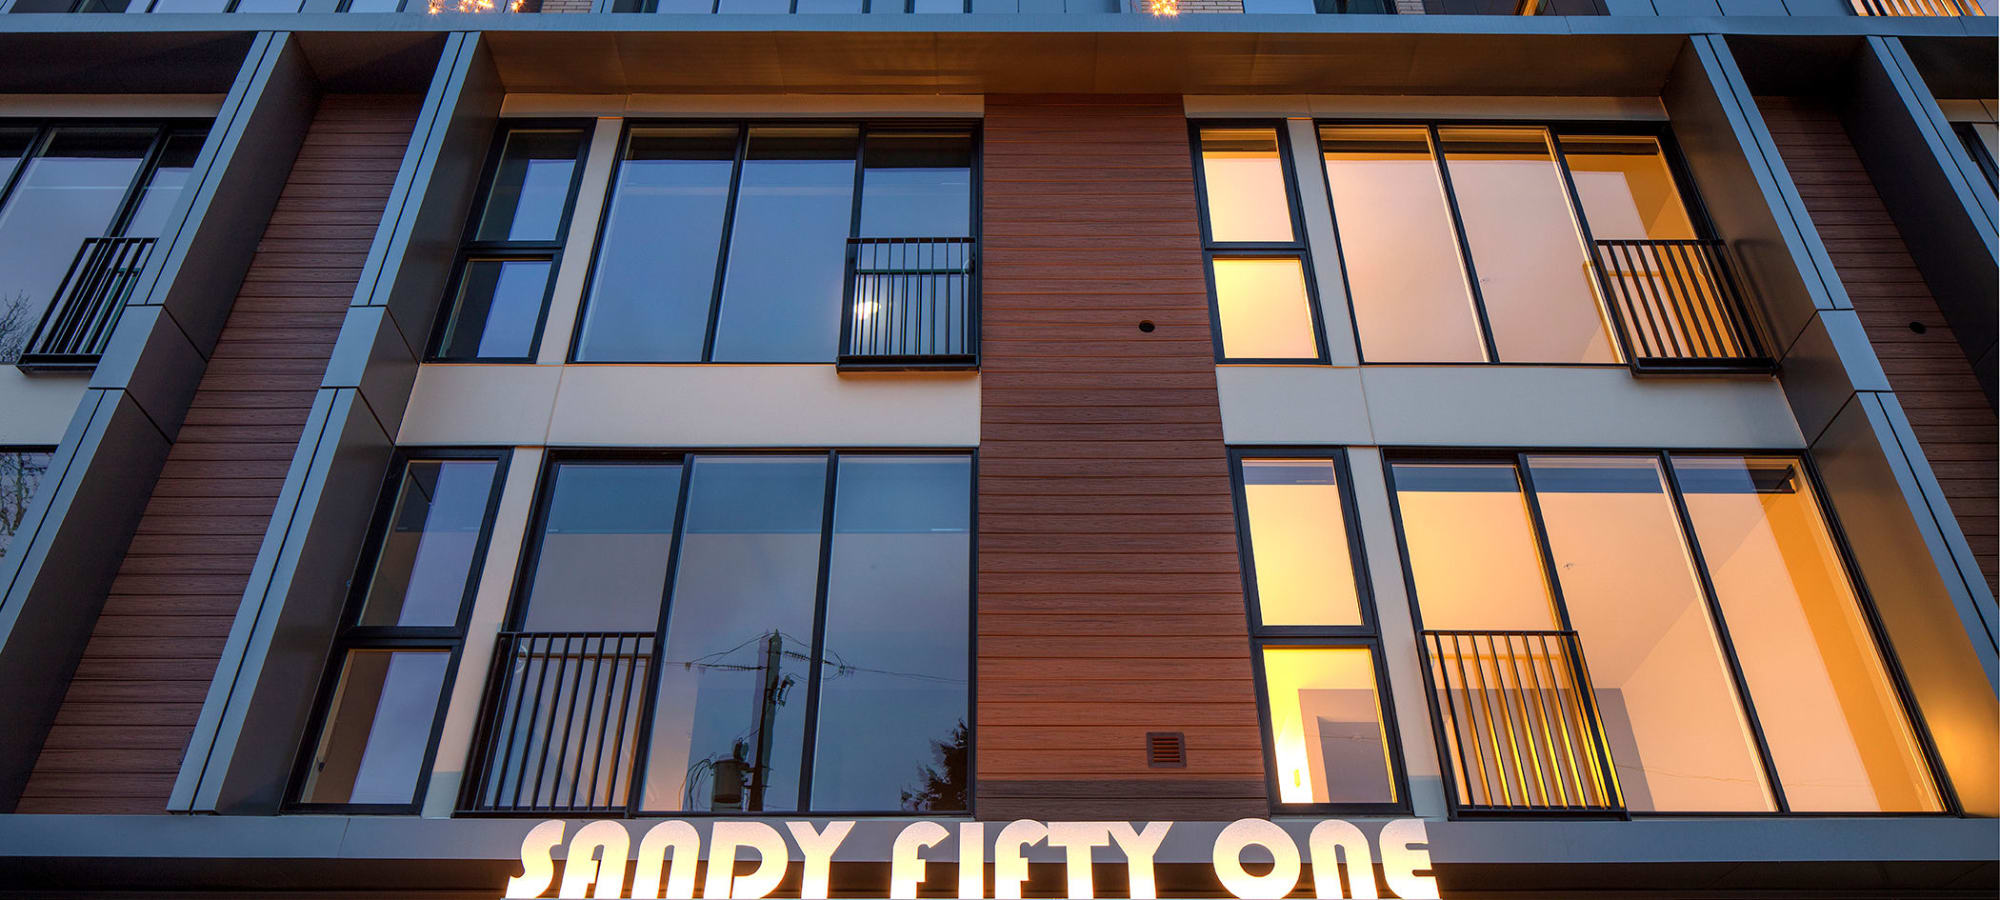 Exterior if building at Sandy Fifty One in Portland, Oregon